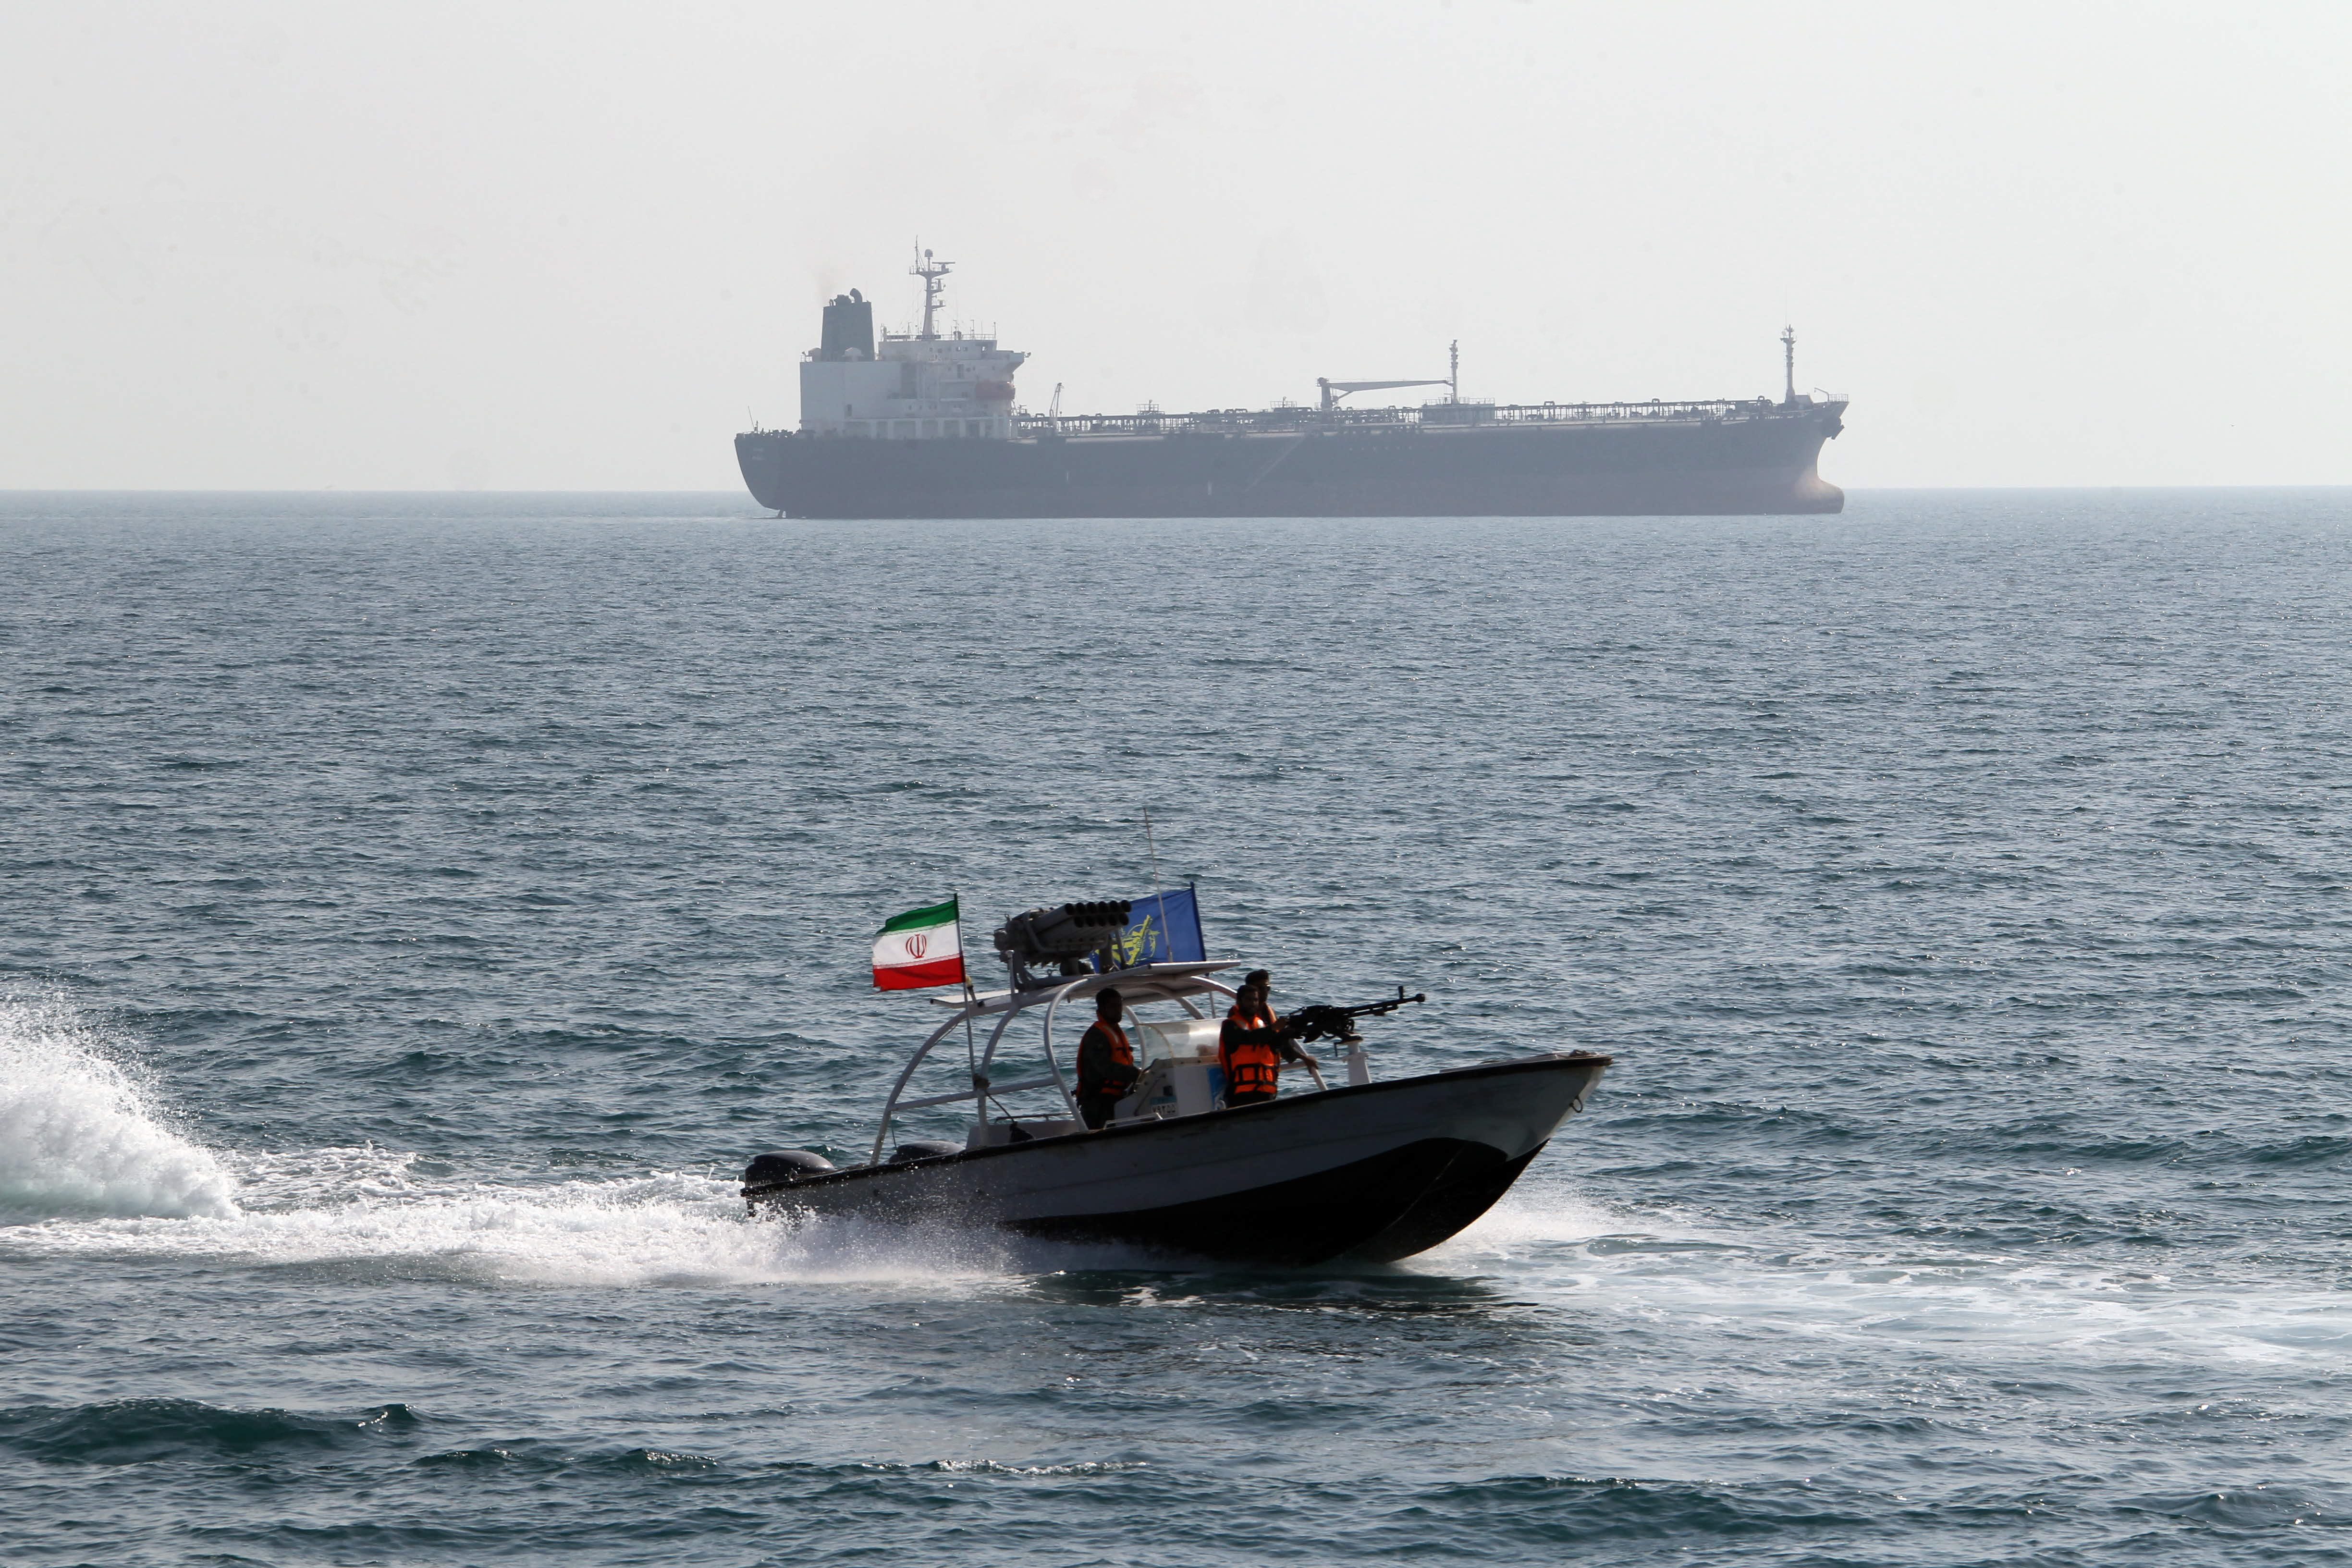 Iranian Revolutionary Guards drive a speedboat in front of an oil tanker during a ceremony to commemorate the 24th anniversary of the downing of Iran Air flight 655 by the US navy, at the port of Bandar Abbas on July 2, 2012.  (Getty)